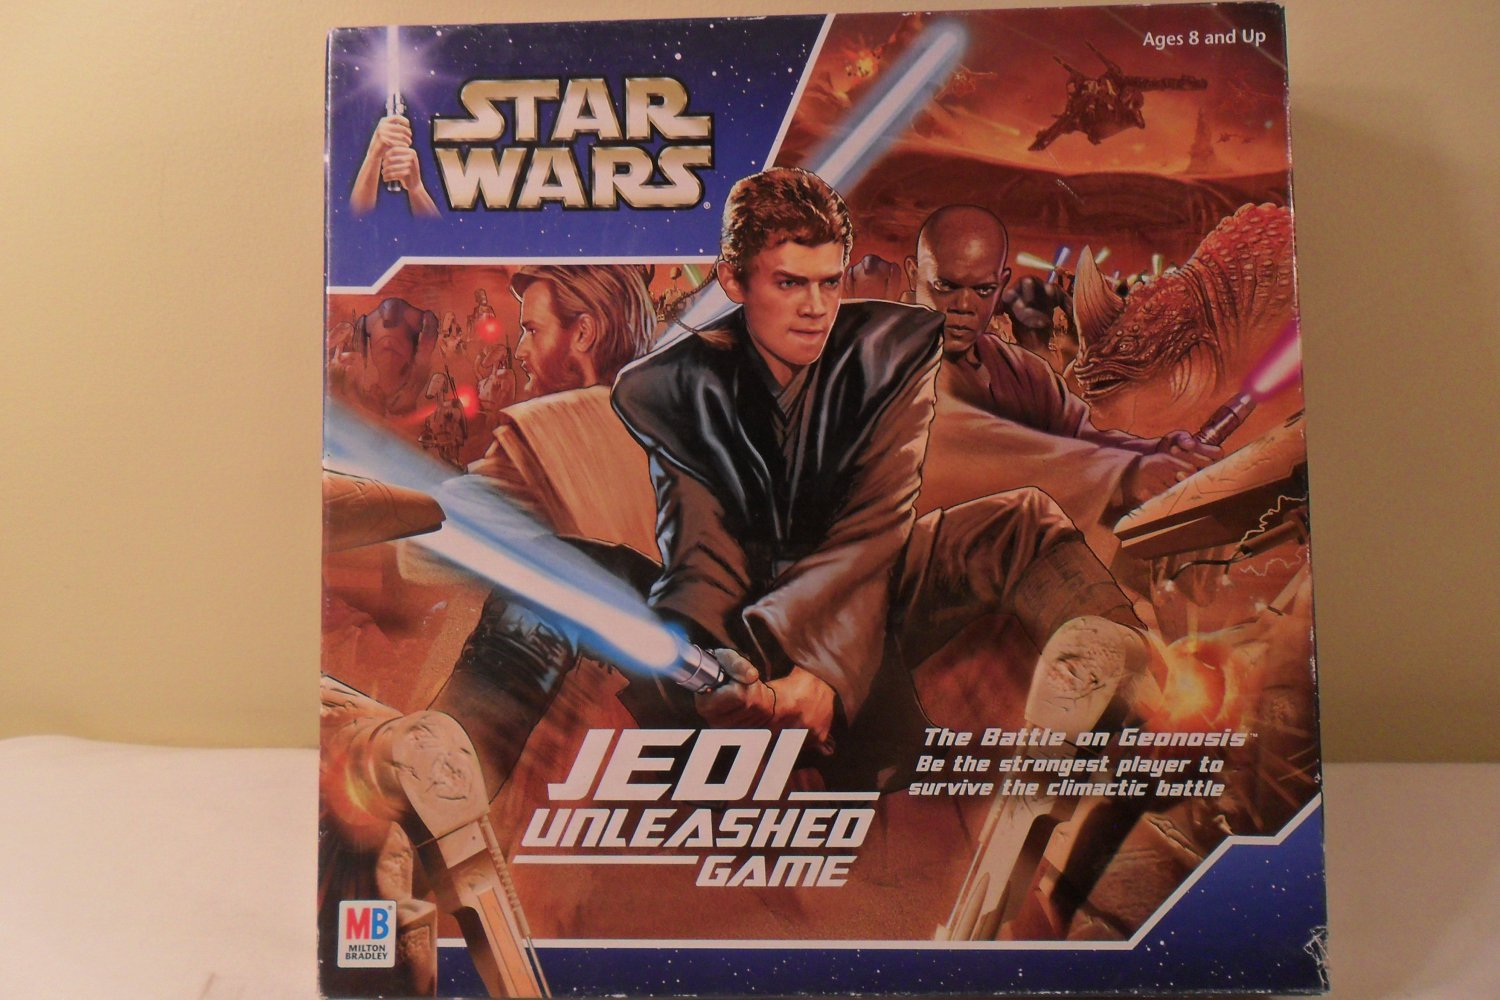 2002 Star Wars Jedi Unleashed Game Battle of Ge0nosis complete